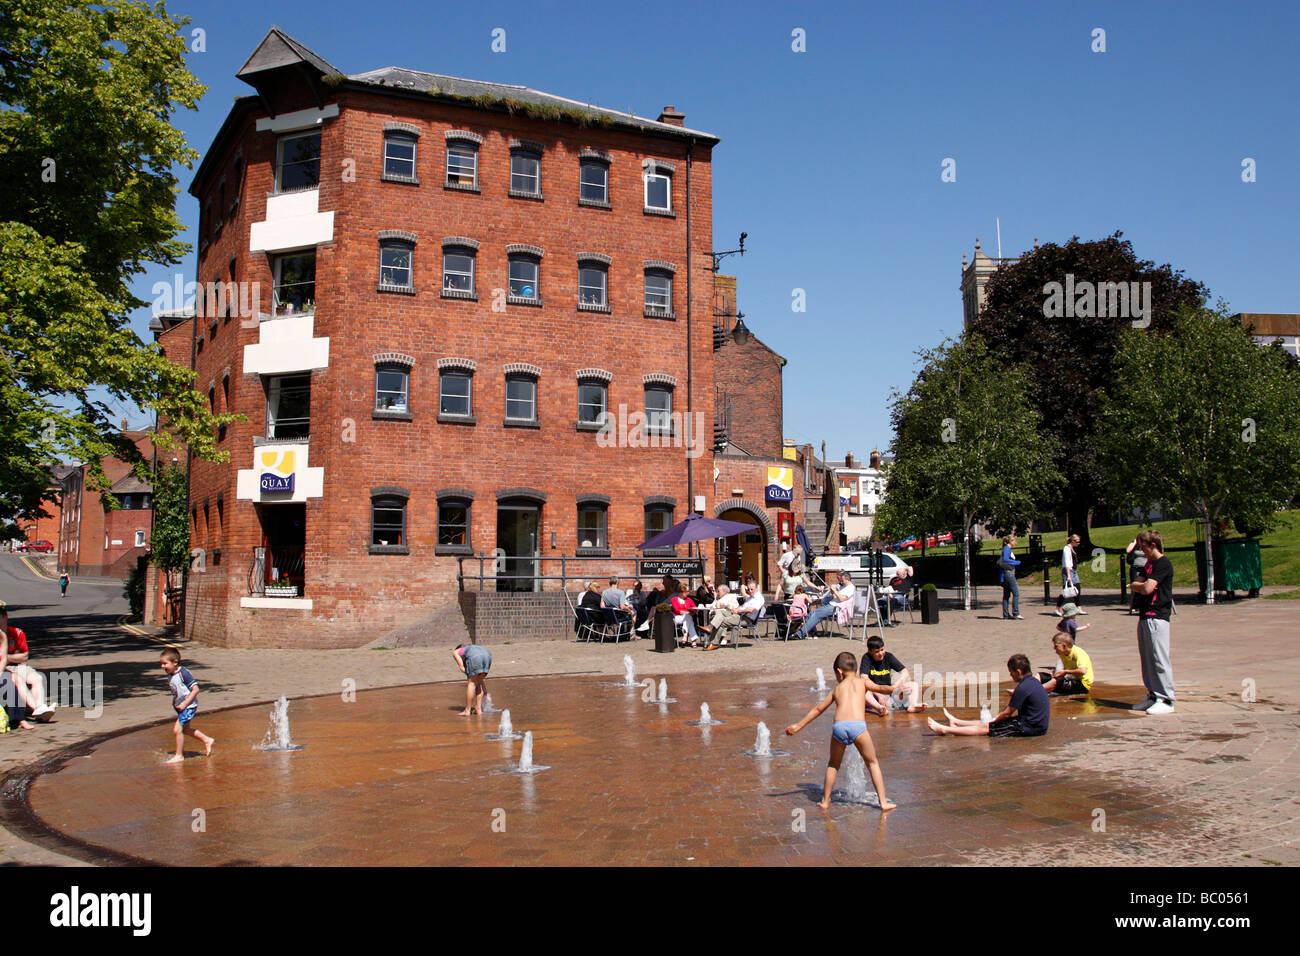 children playing in the quayhead square water fountain near st andrews gardens worcester uk Stock Photo